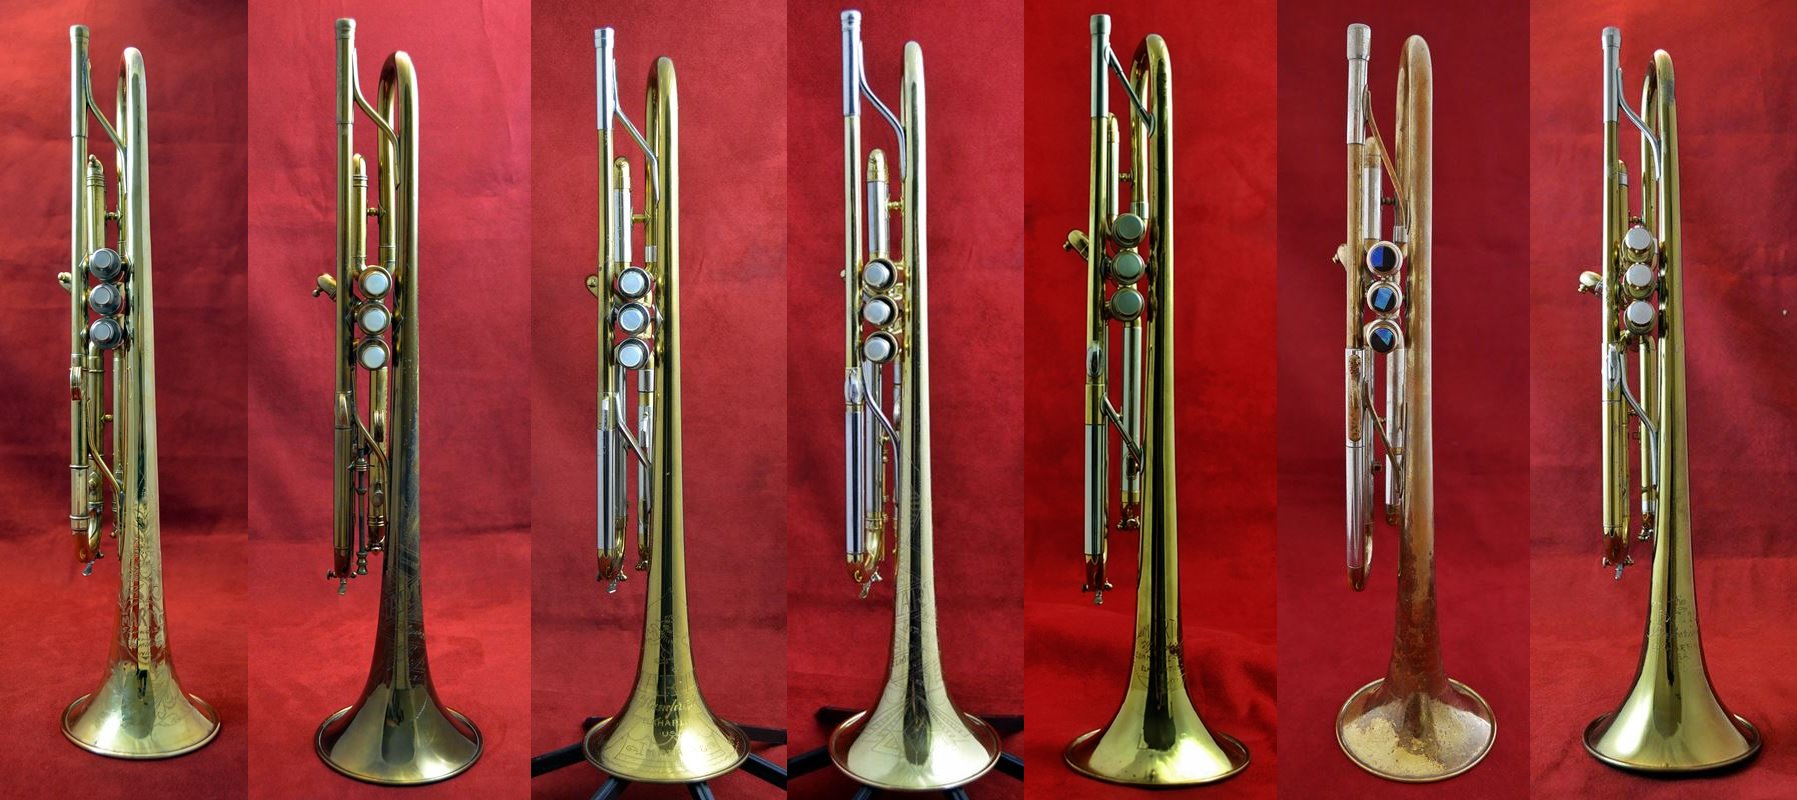 martin-trumpets-combined.jpg